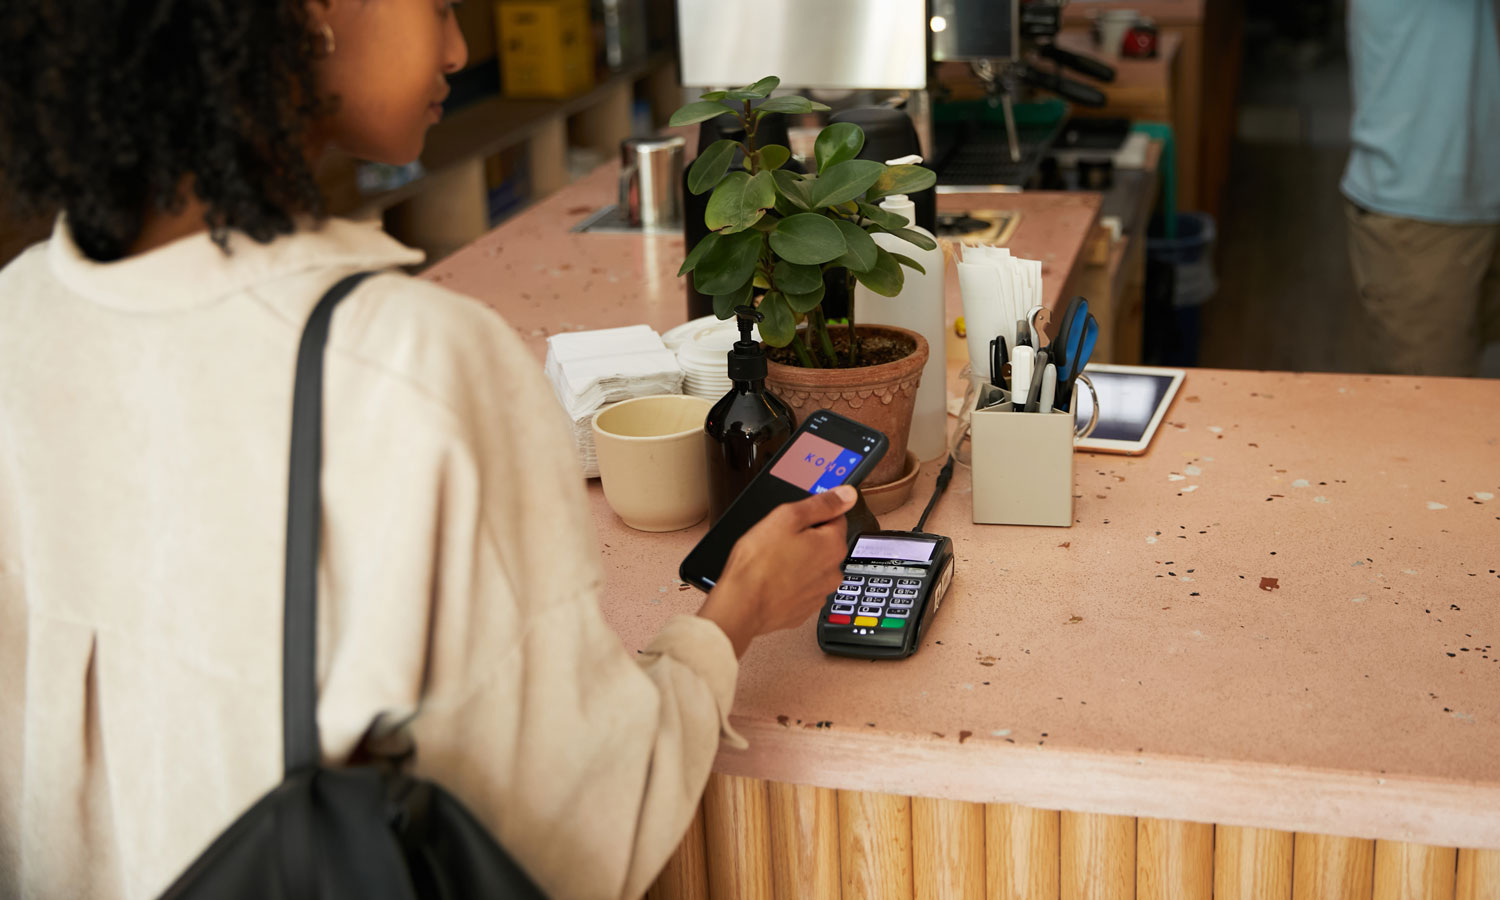 A woman is buying a coffee at an artisanal café, using her KOHO credit card.